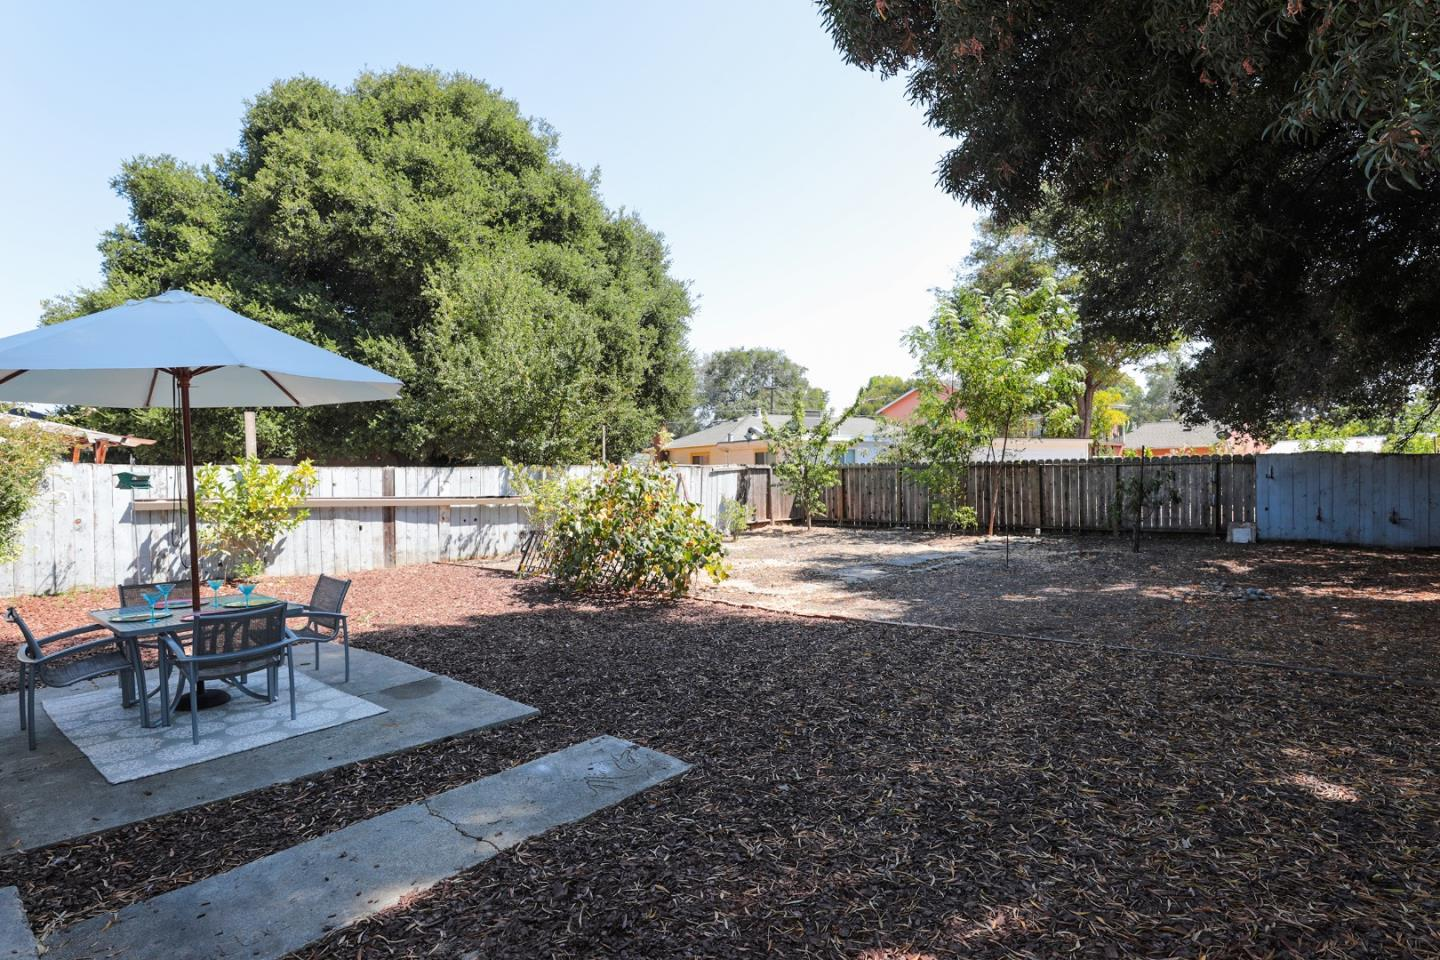 1012 Bay Road East Palo Alto, CA 94303 - MLS #: ML81722032